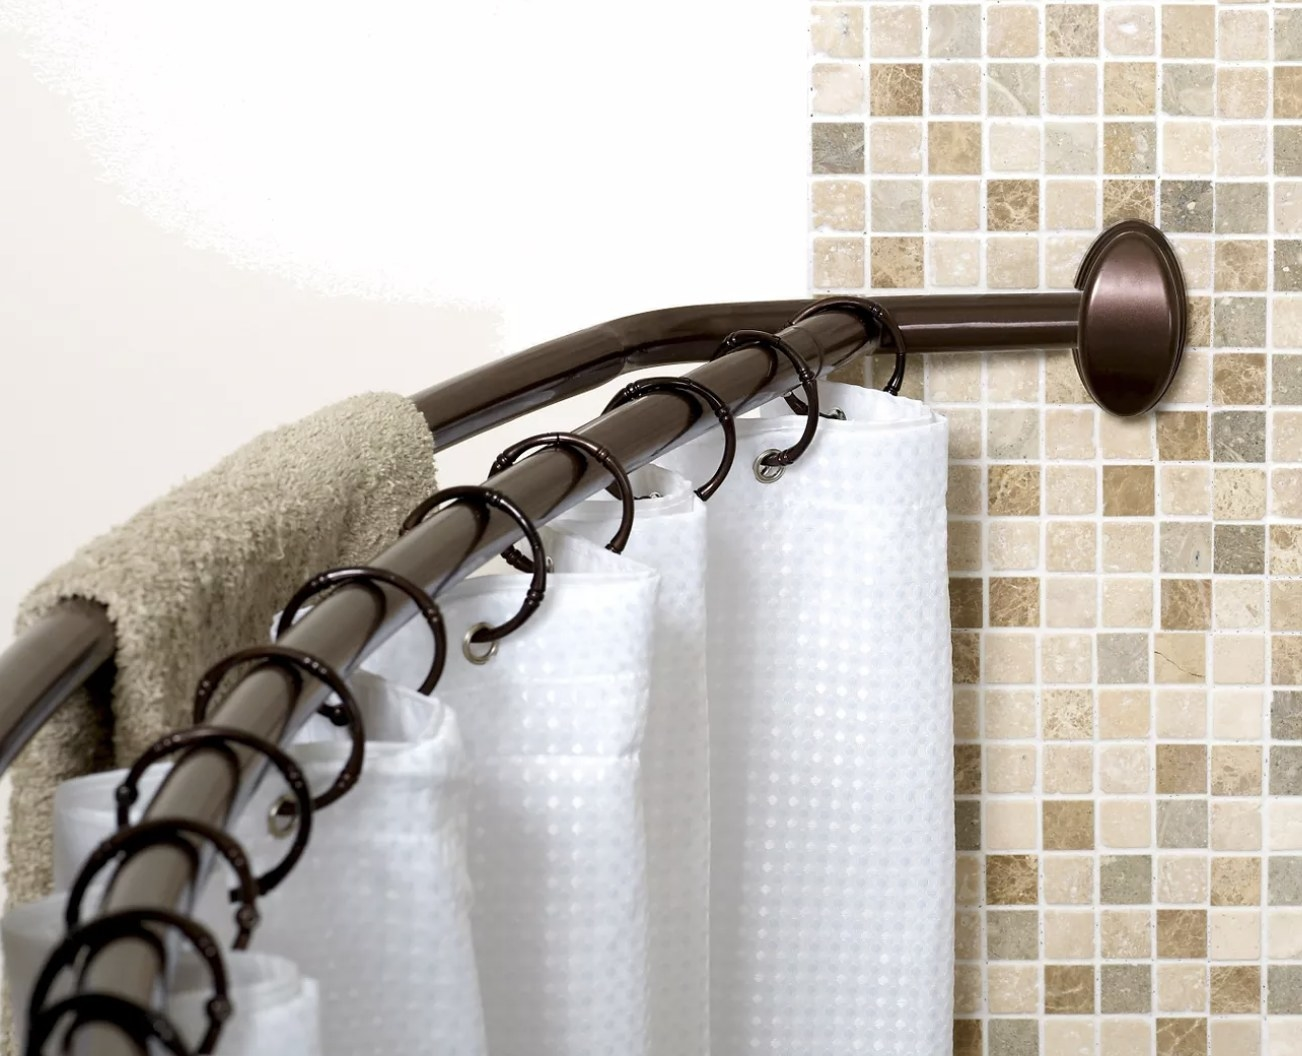 The curved curtain rod